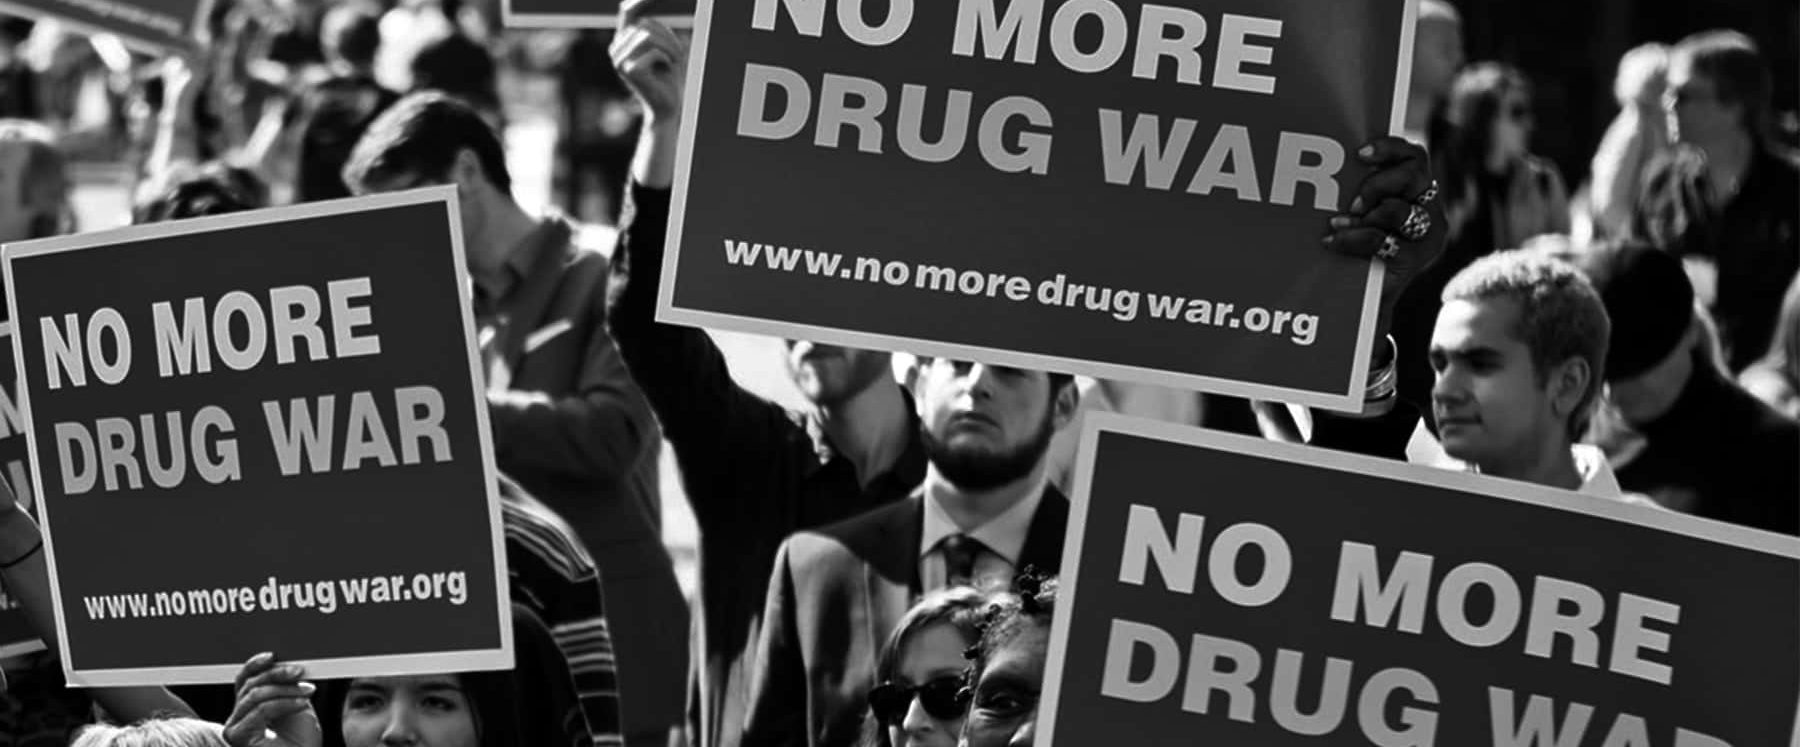 When Will We Realize The War on Drugs Doesn't Work?